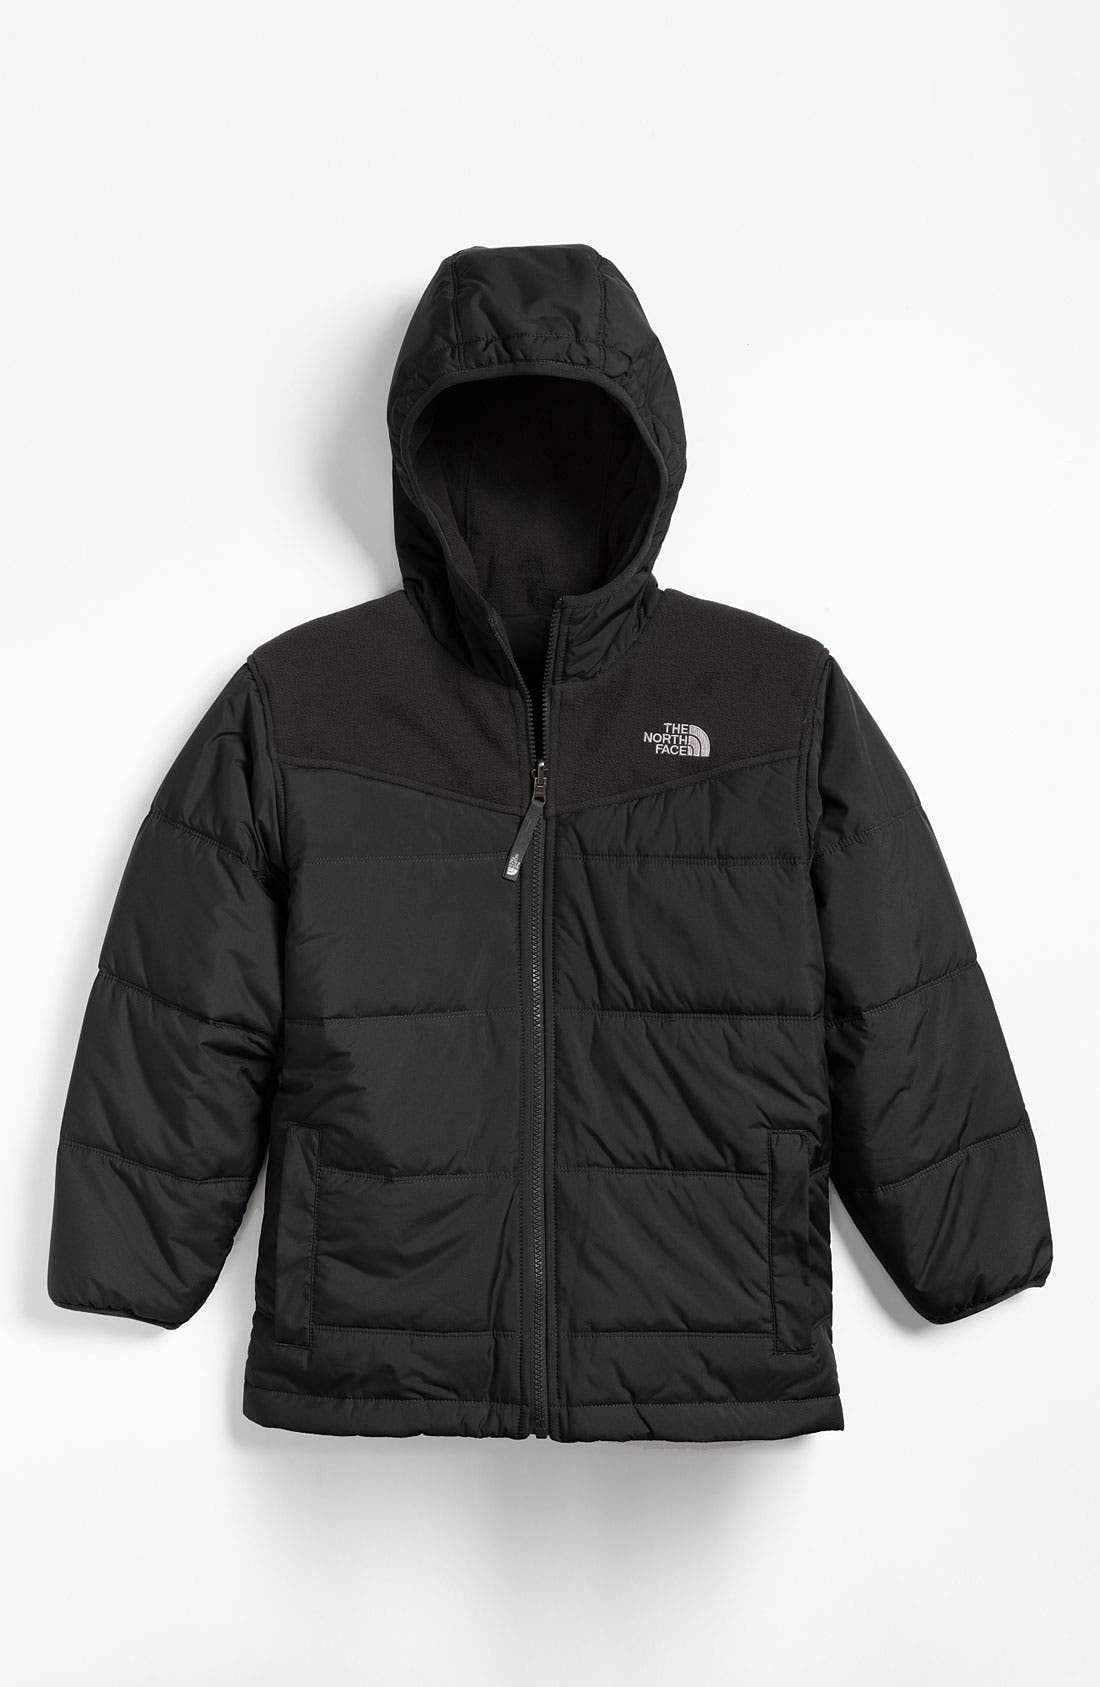 Alternate Image 1 Selected - The North Face 'True/False' Reversible Jacket (Big Boys)